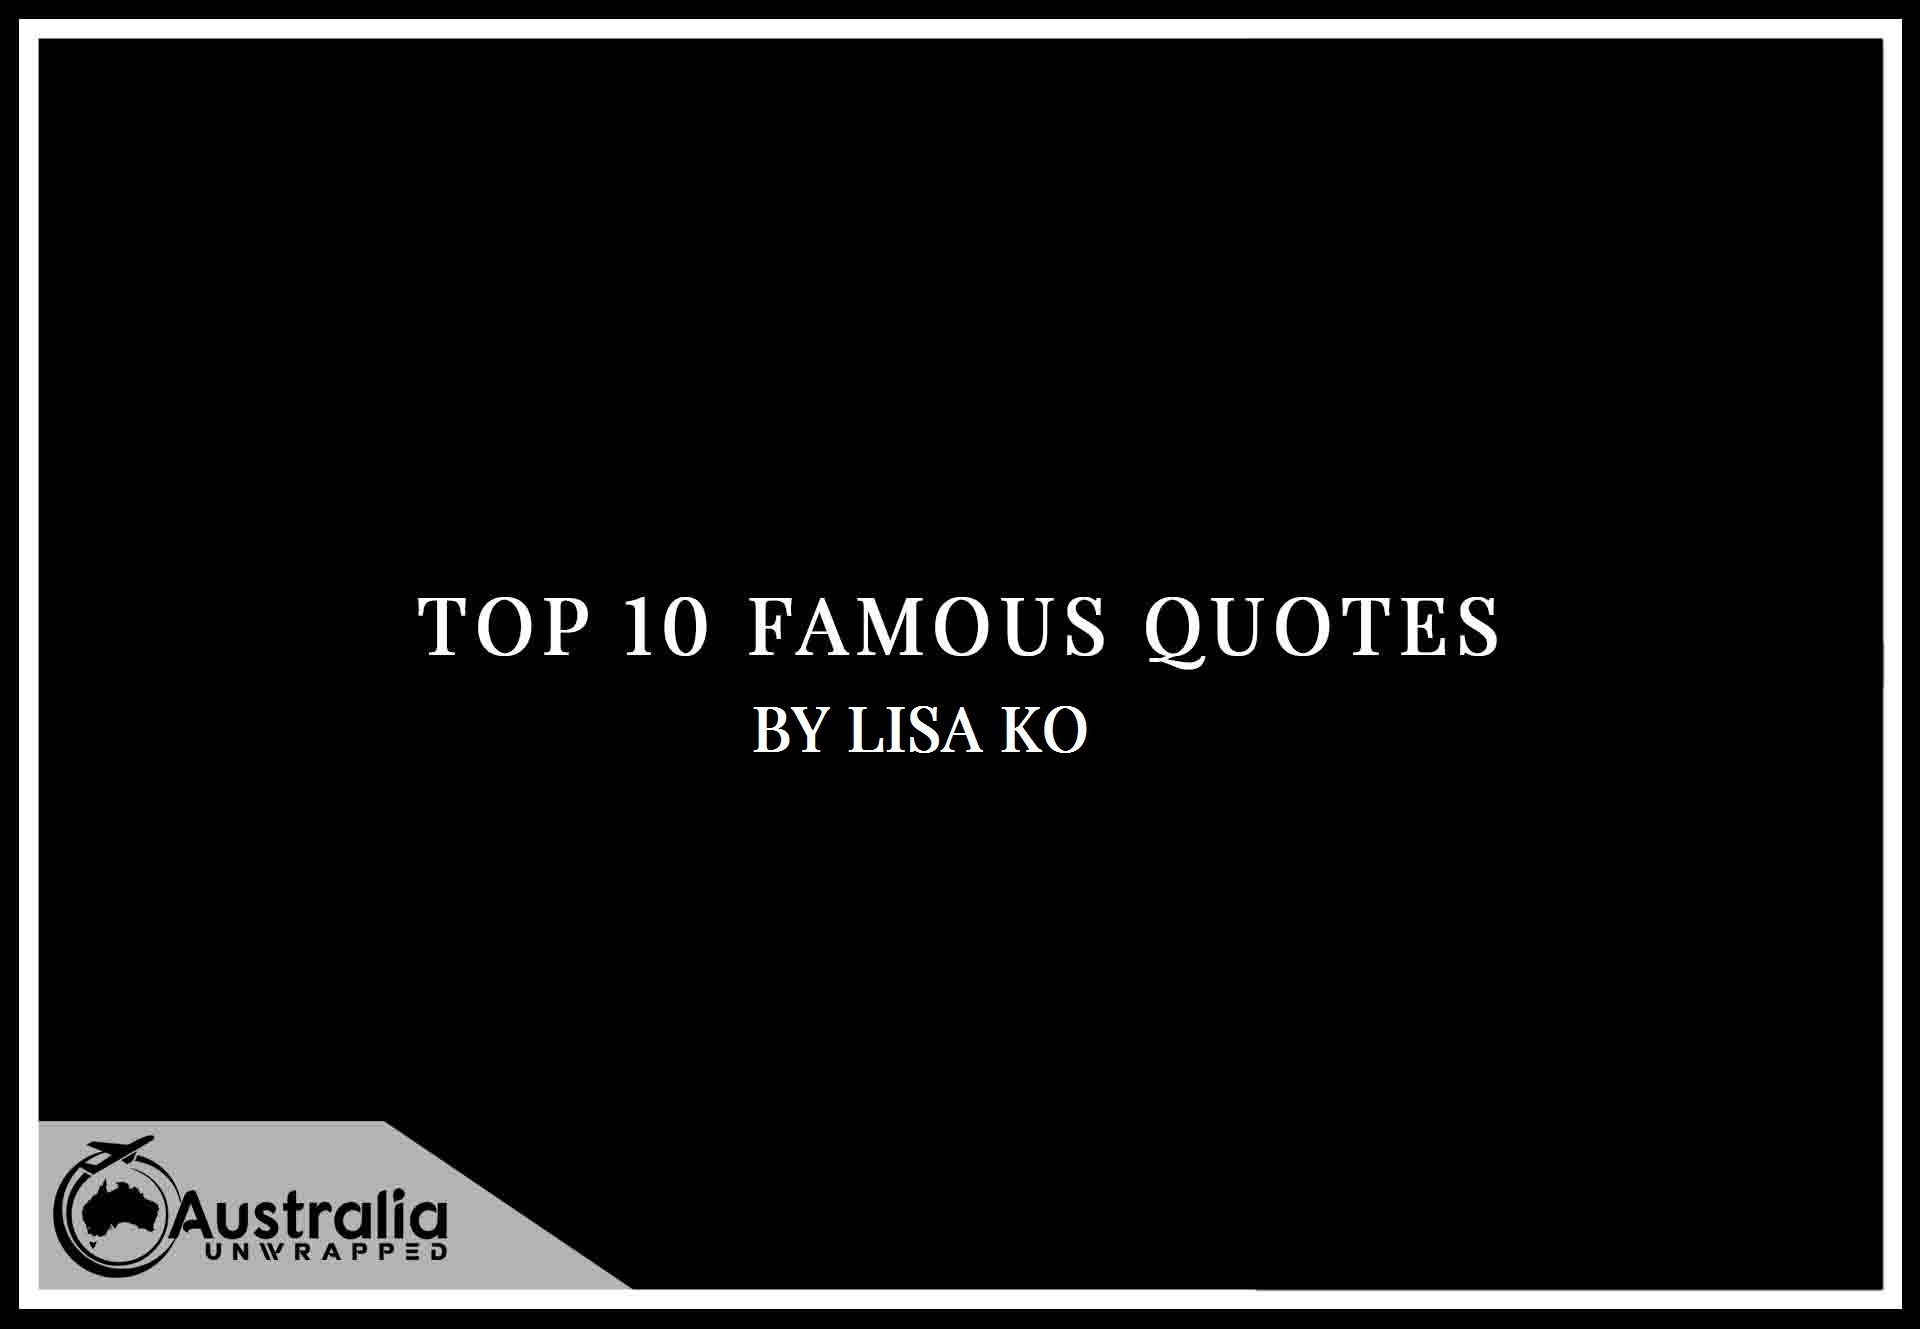 Lisa Ko's Top 10 Popular and Famous Quotes